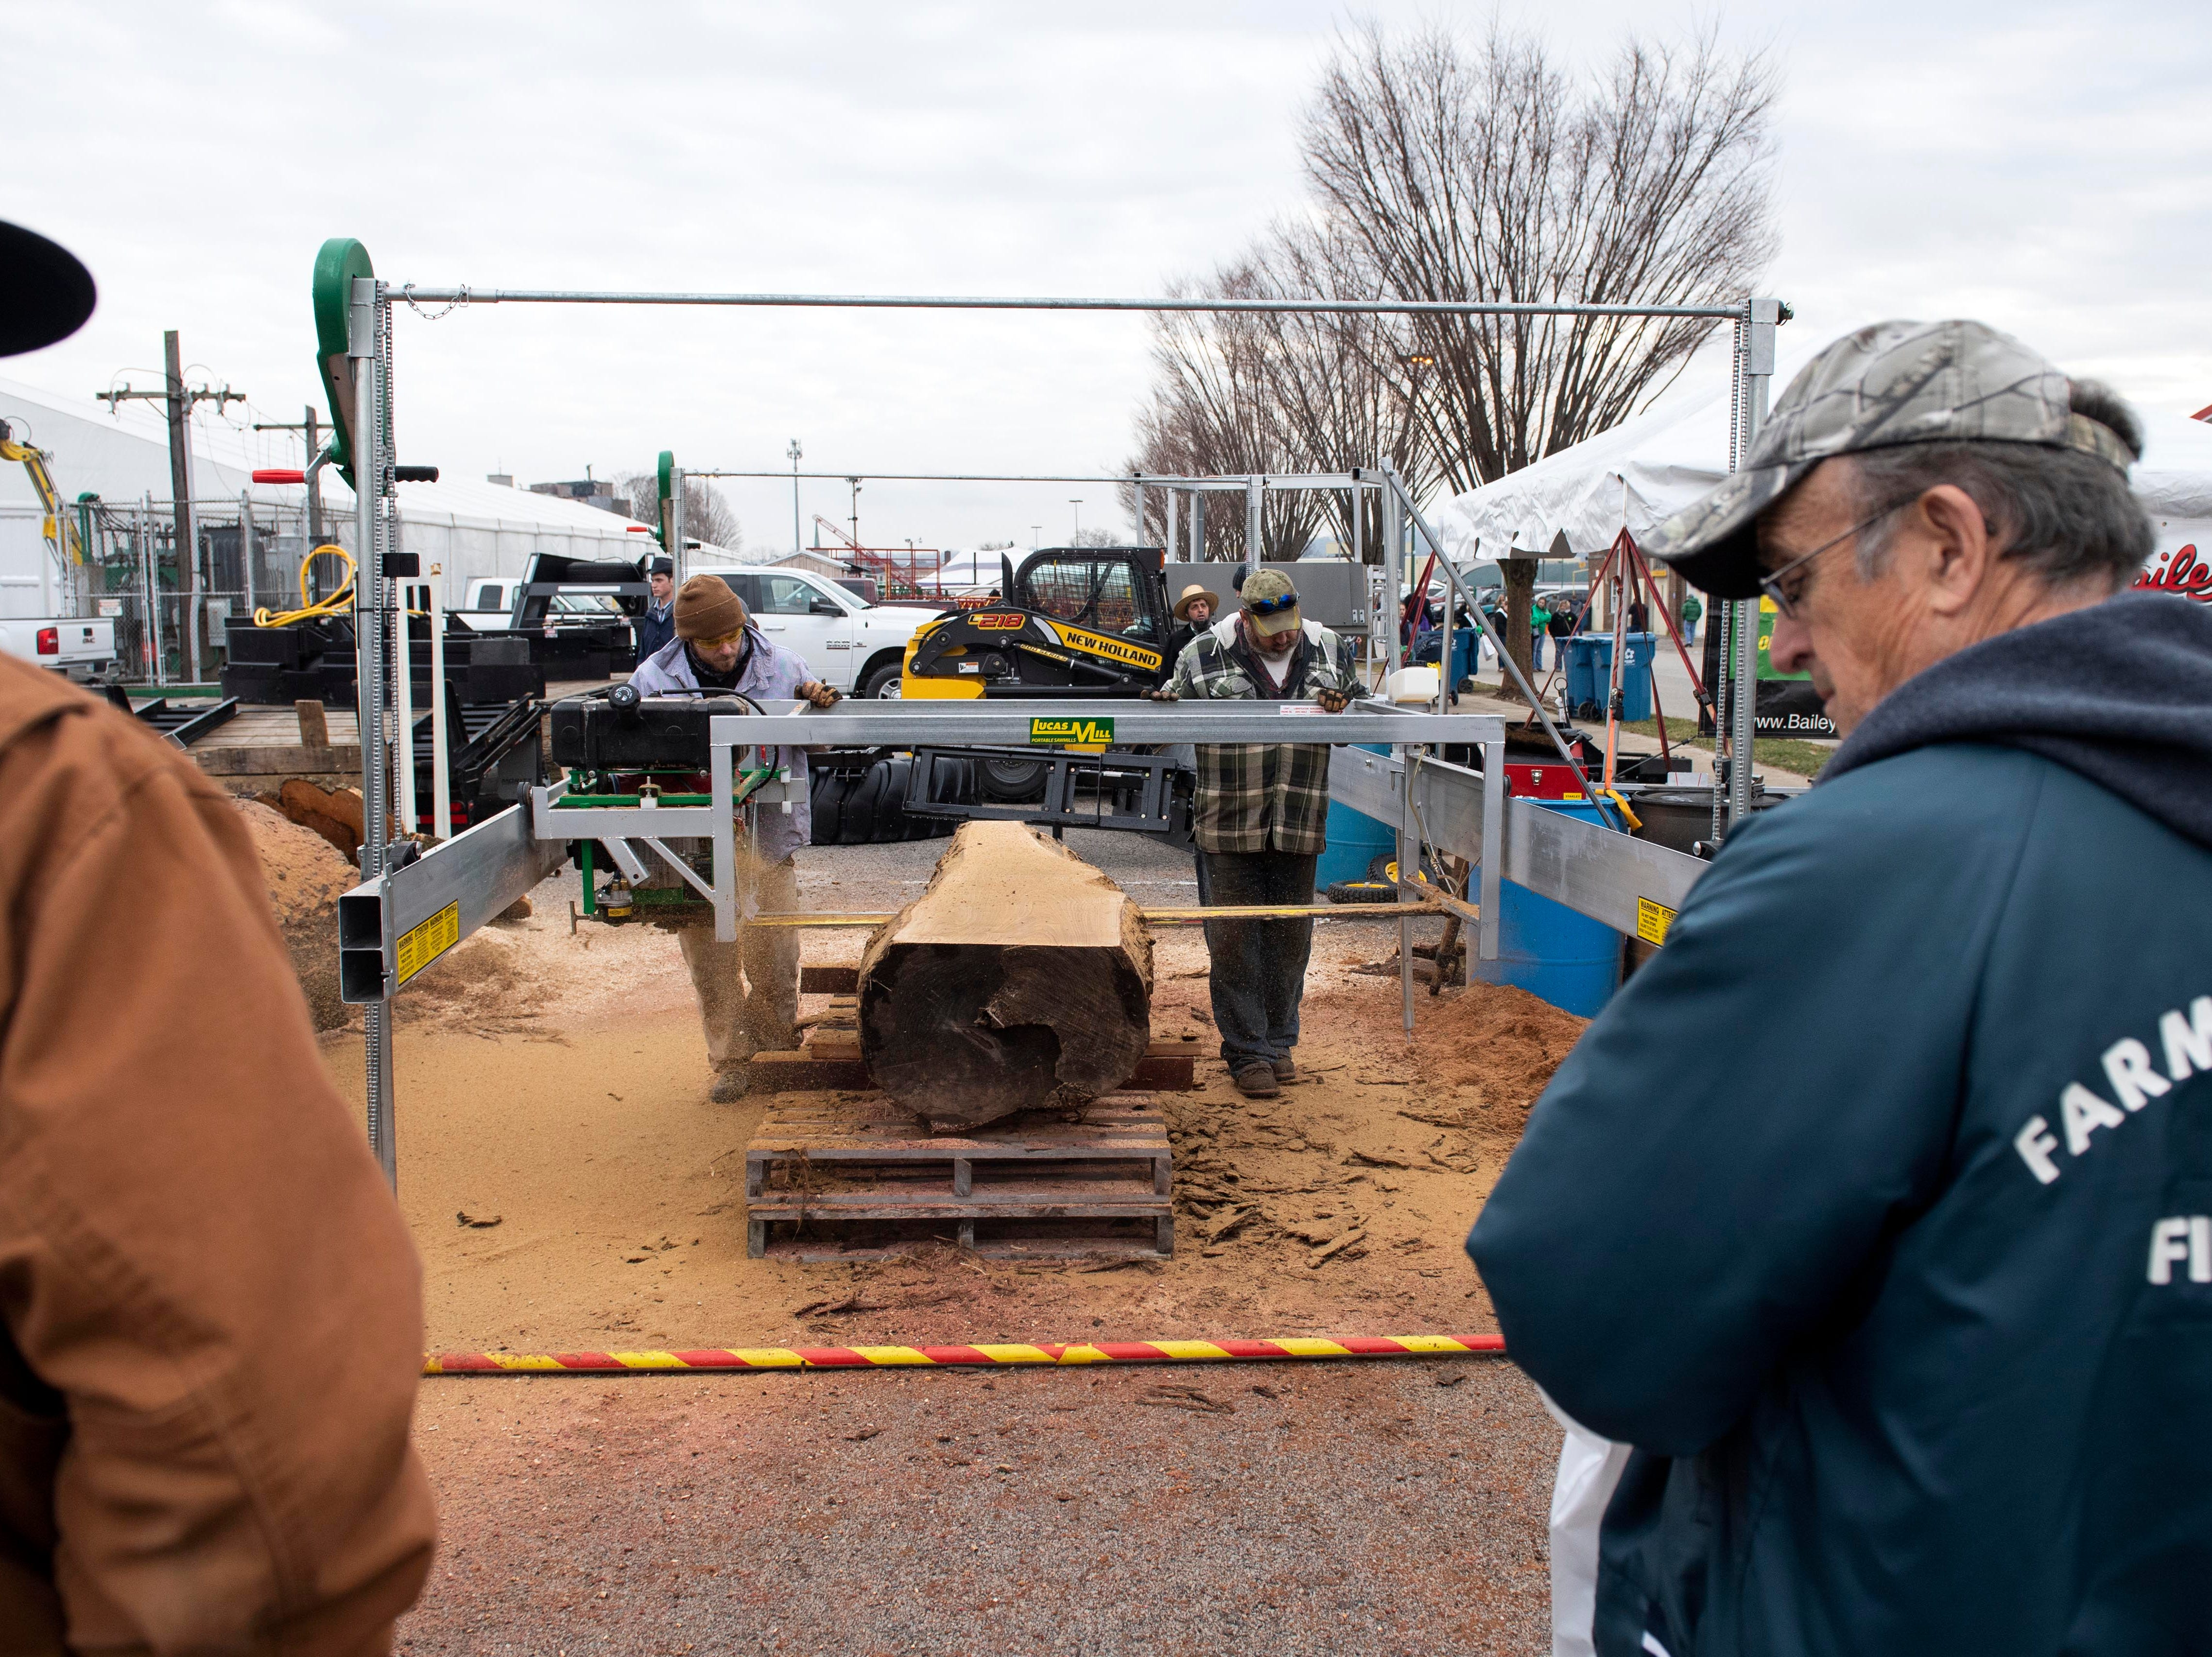 Bystanders watch a demonstration of a portable saw system, Tuesday, Jan. 8, 2019. The Keystone Farm Show has nearly 420 vendors and is expected to bring up to 15,000 people to the York Expo Center. The show runs through Thursday, Jan. 10.